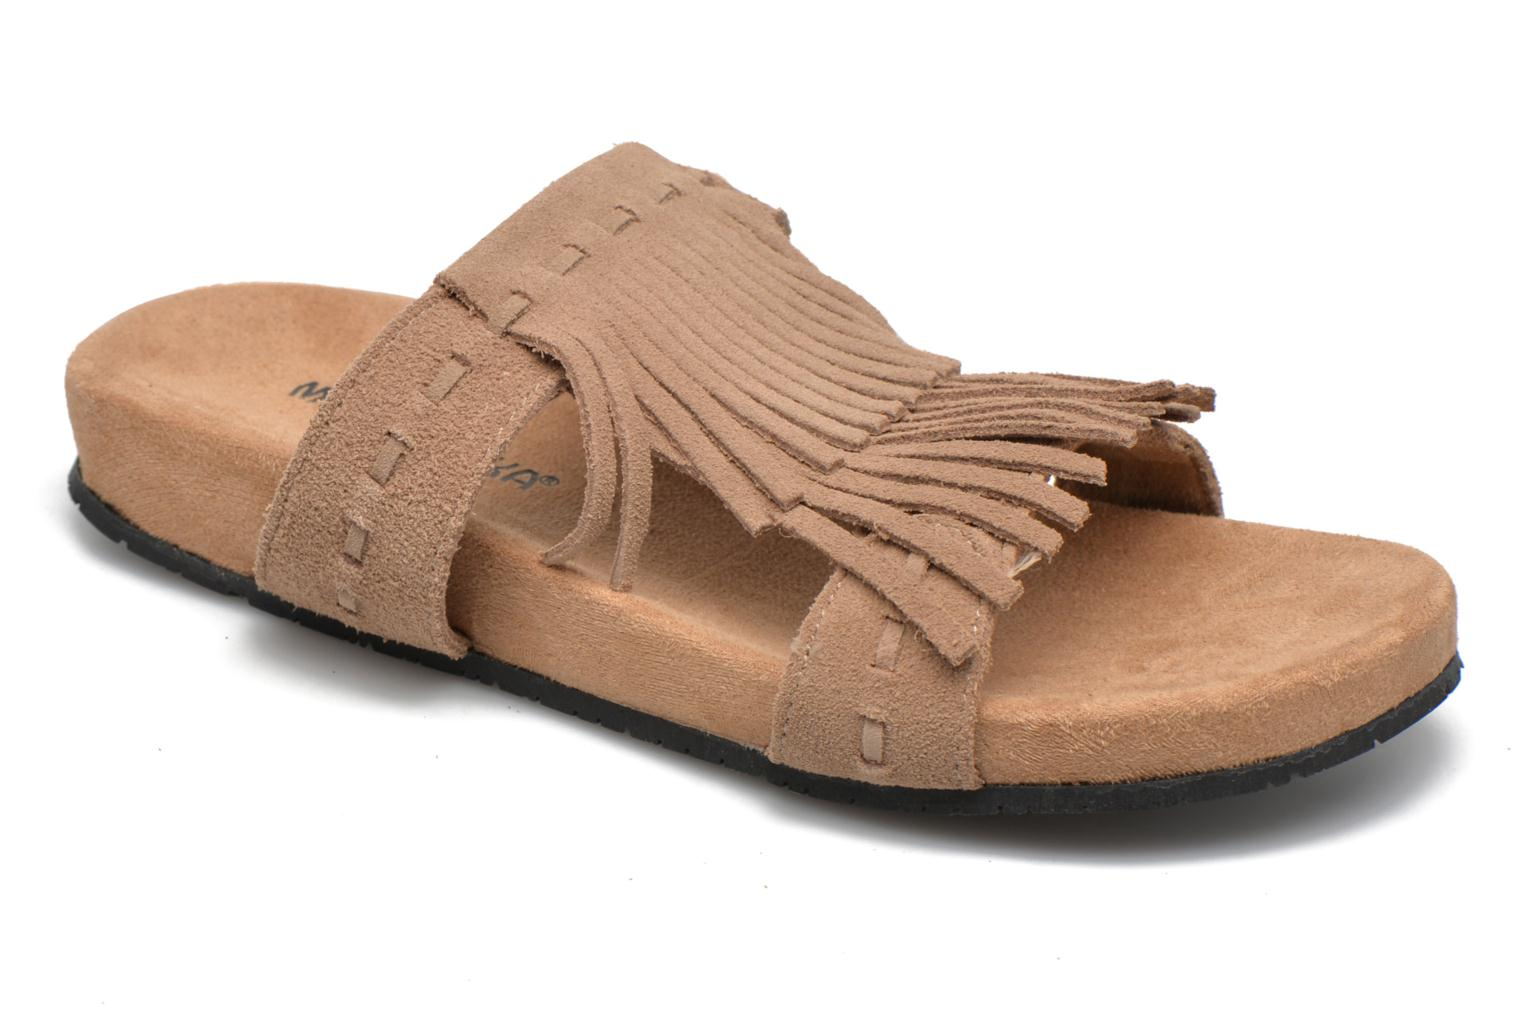 Daisy Sandal Taupe Suede